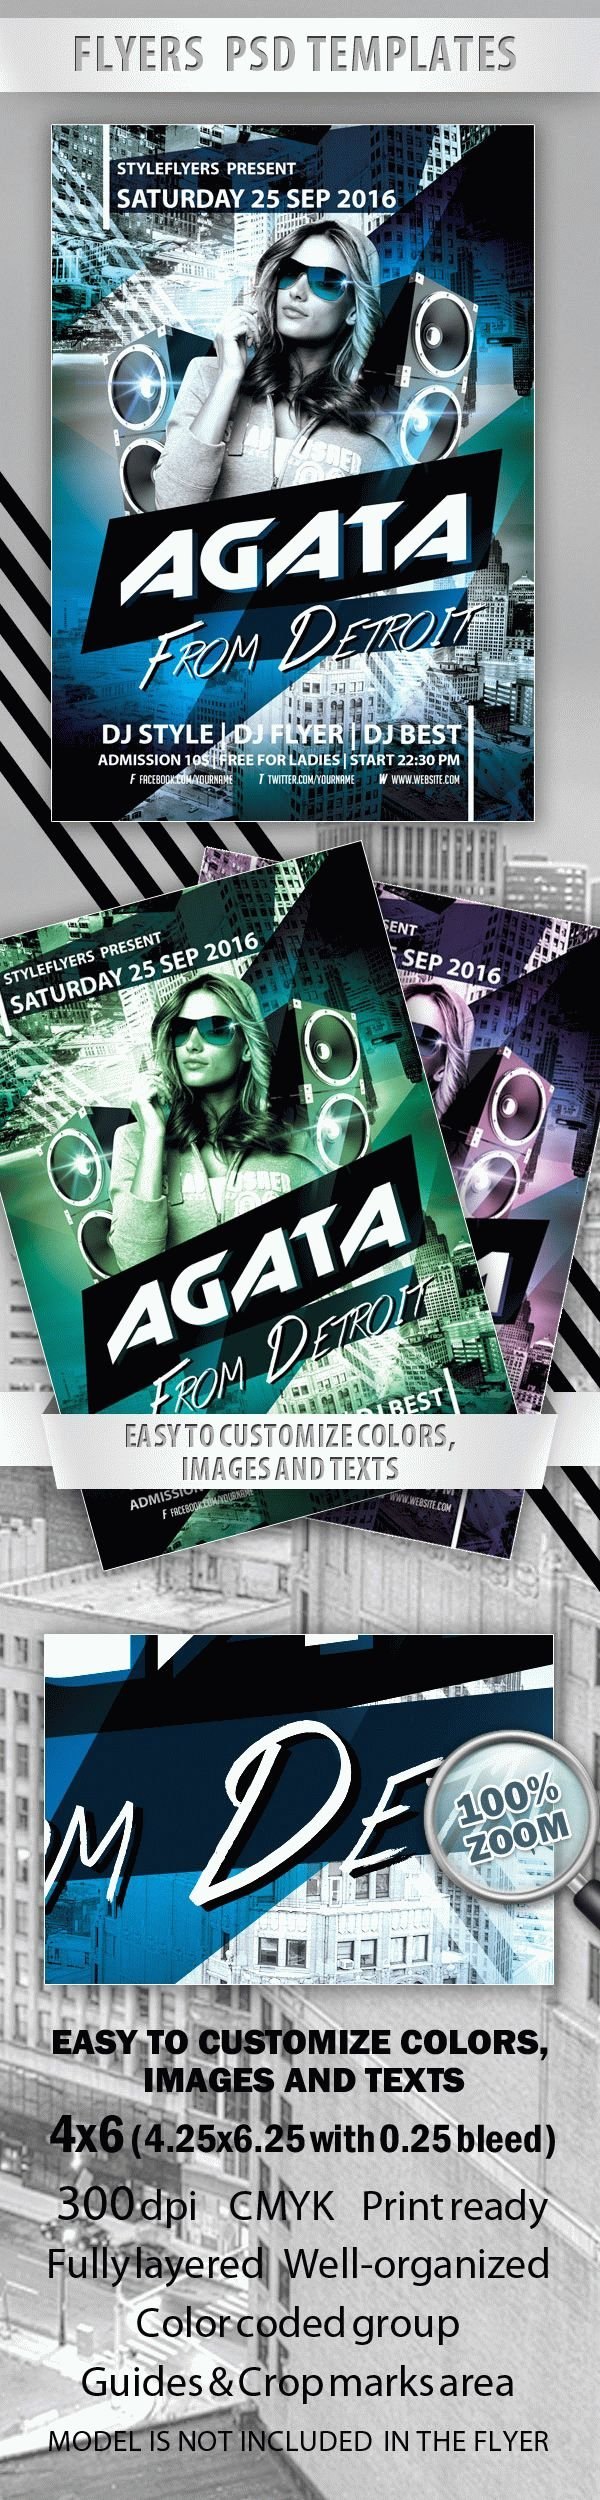 Agata from Detroit Party Flyer